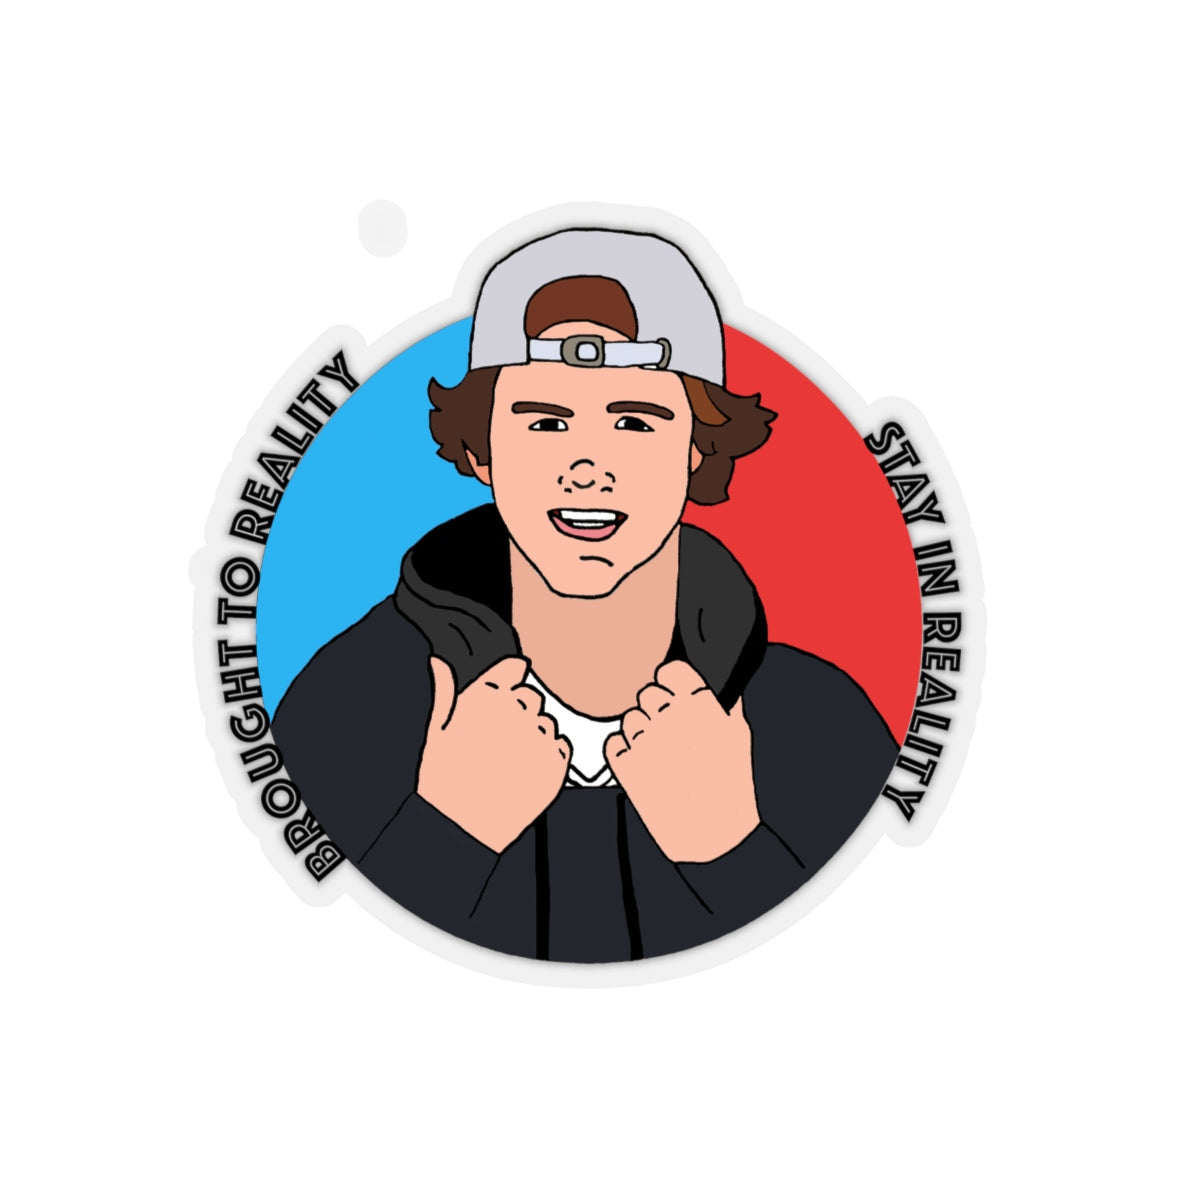 Swagger Sticker